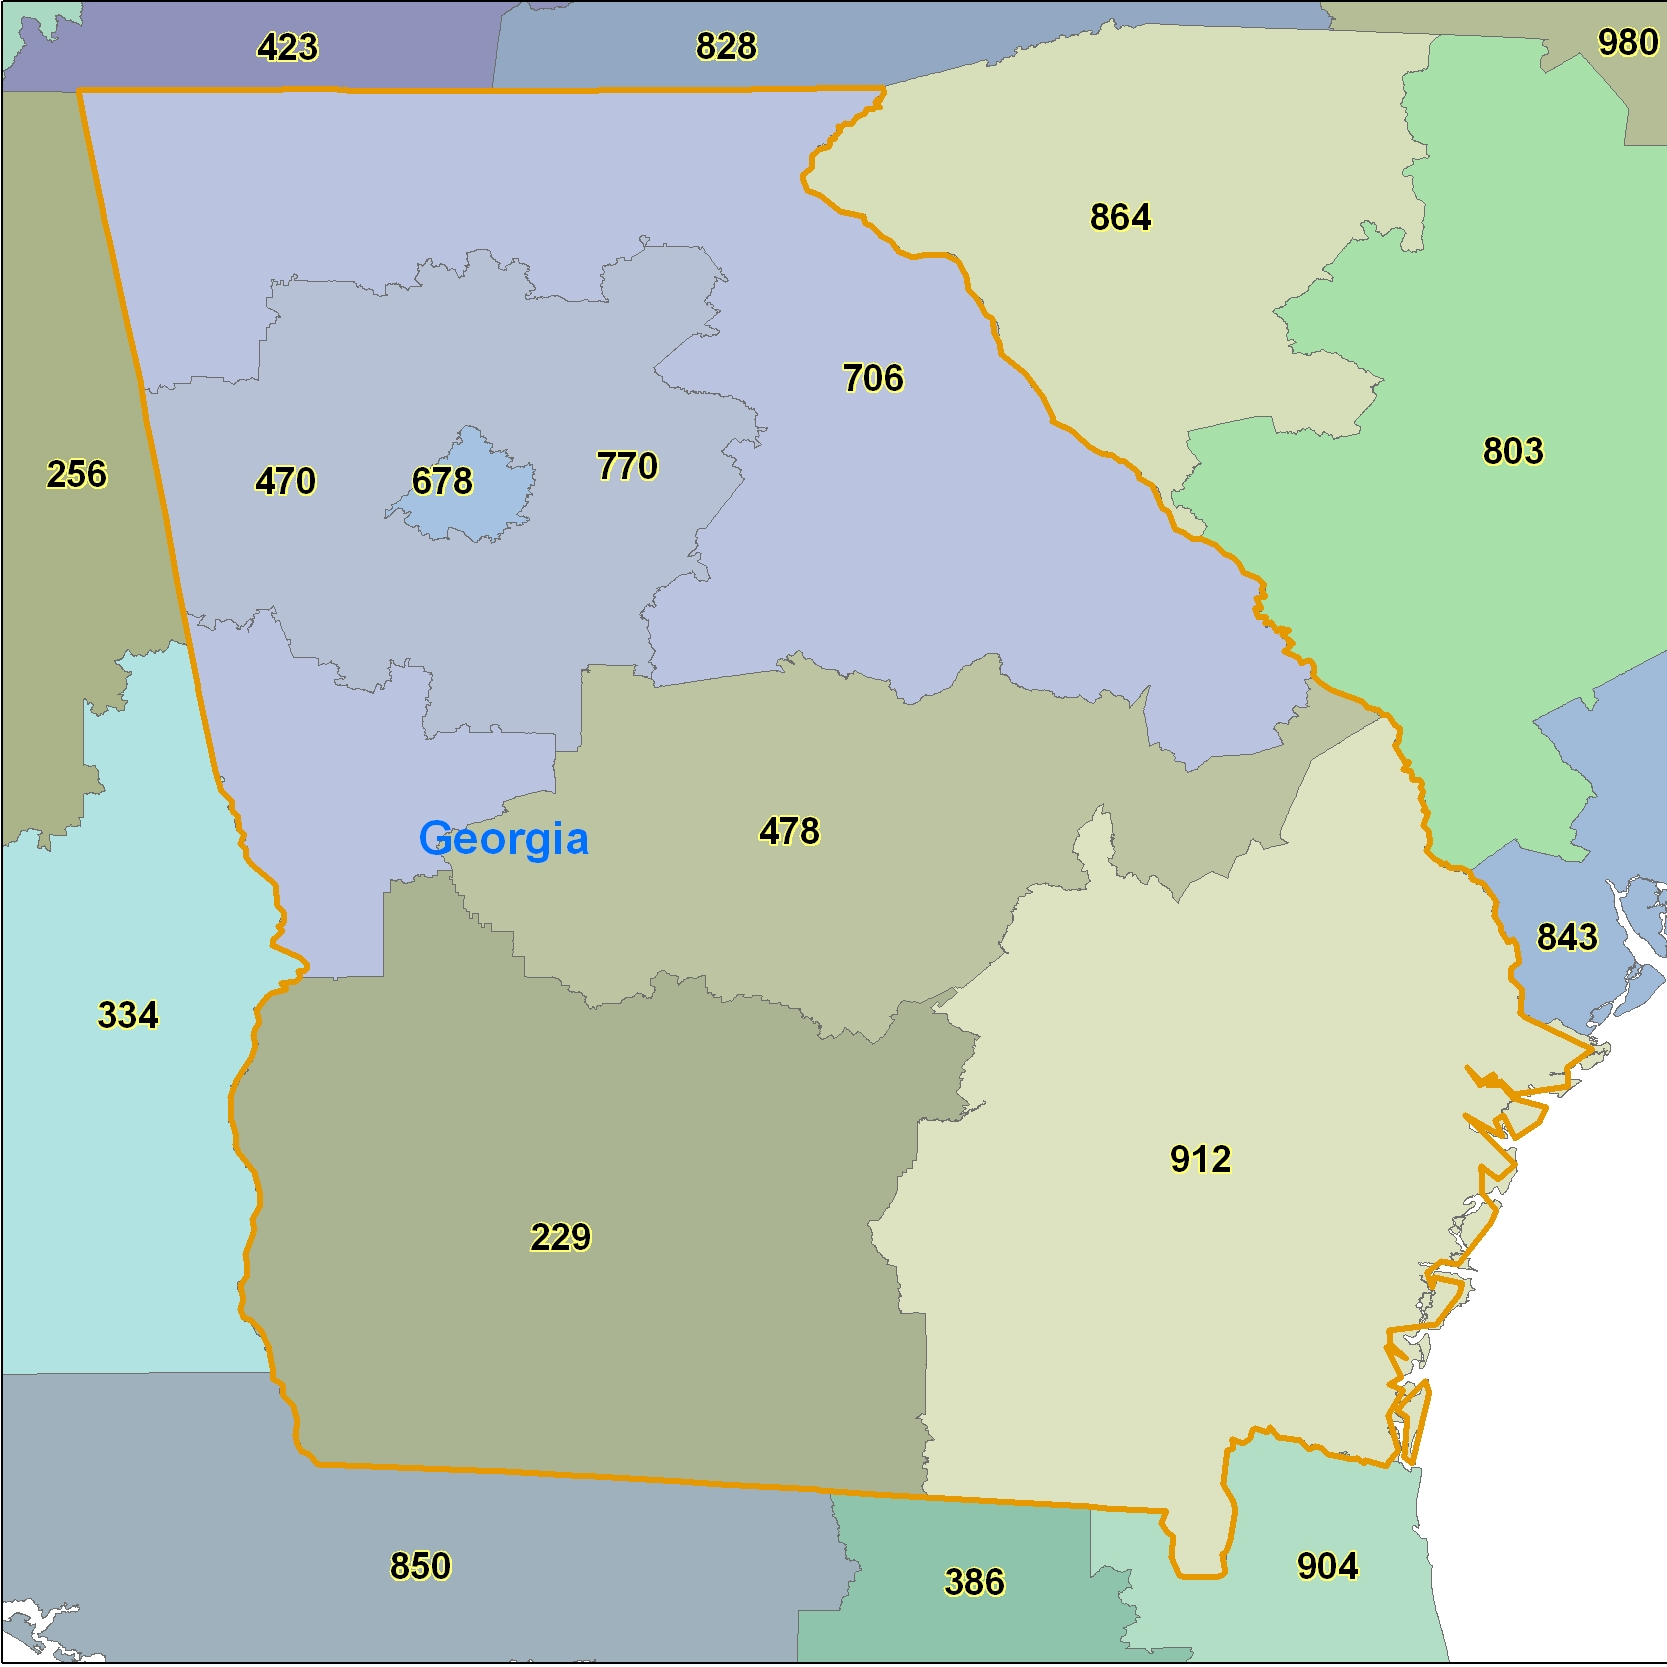 Georgia Area Code Maps Georgia Telephone Area Code Maps Free - Us telephone area codes map